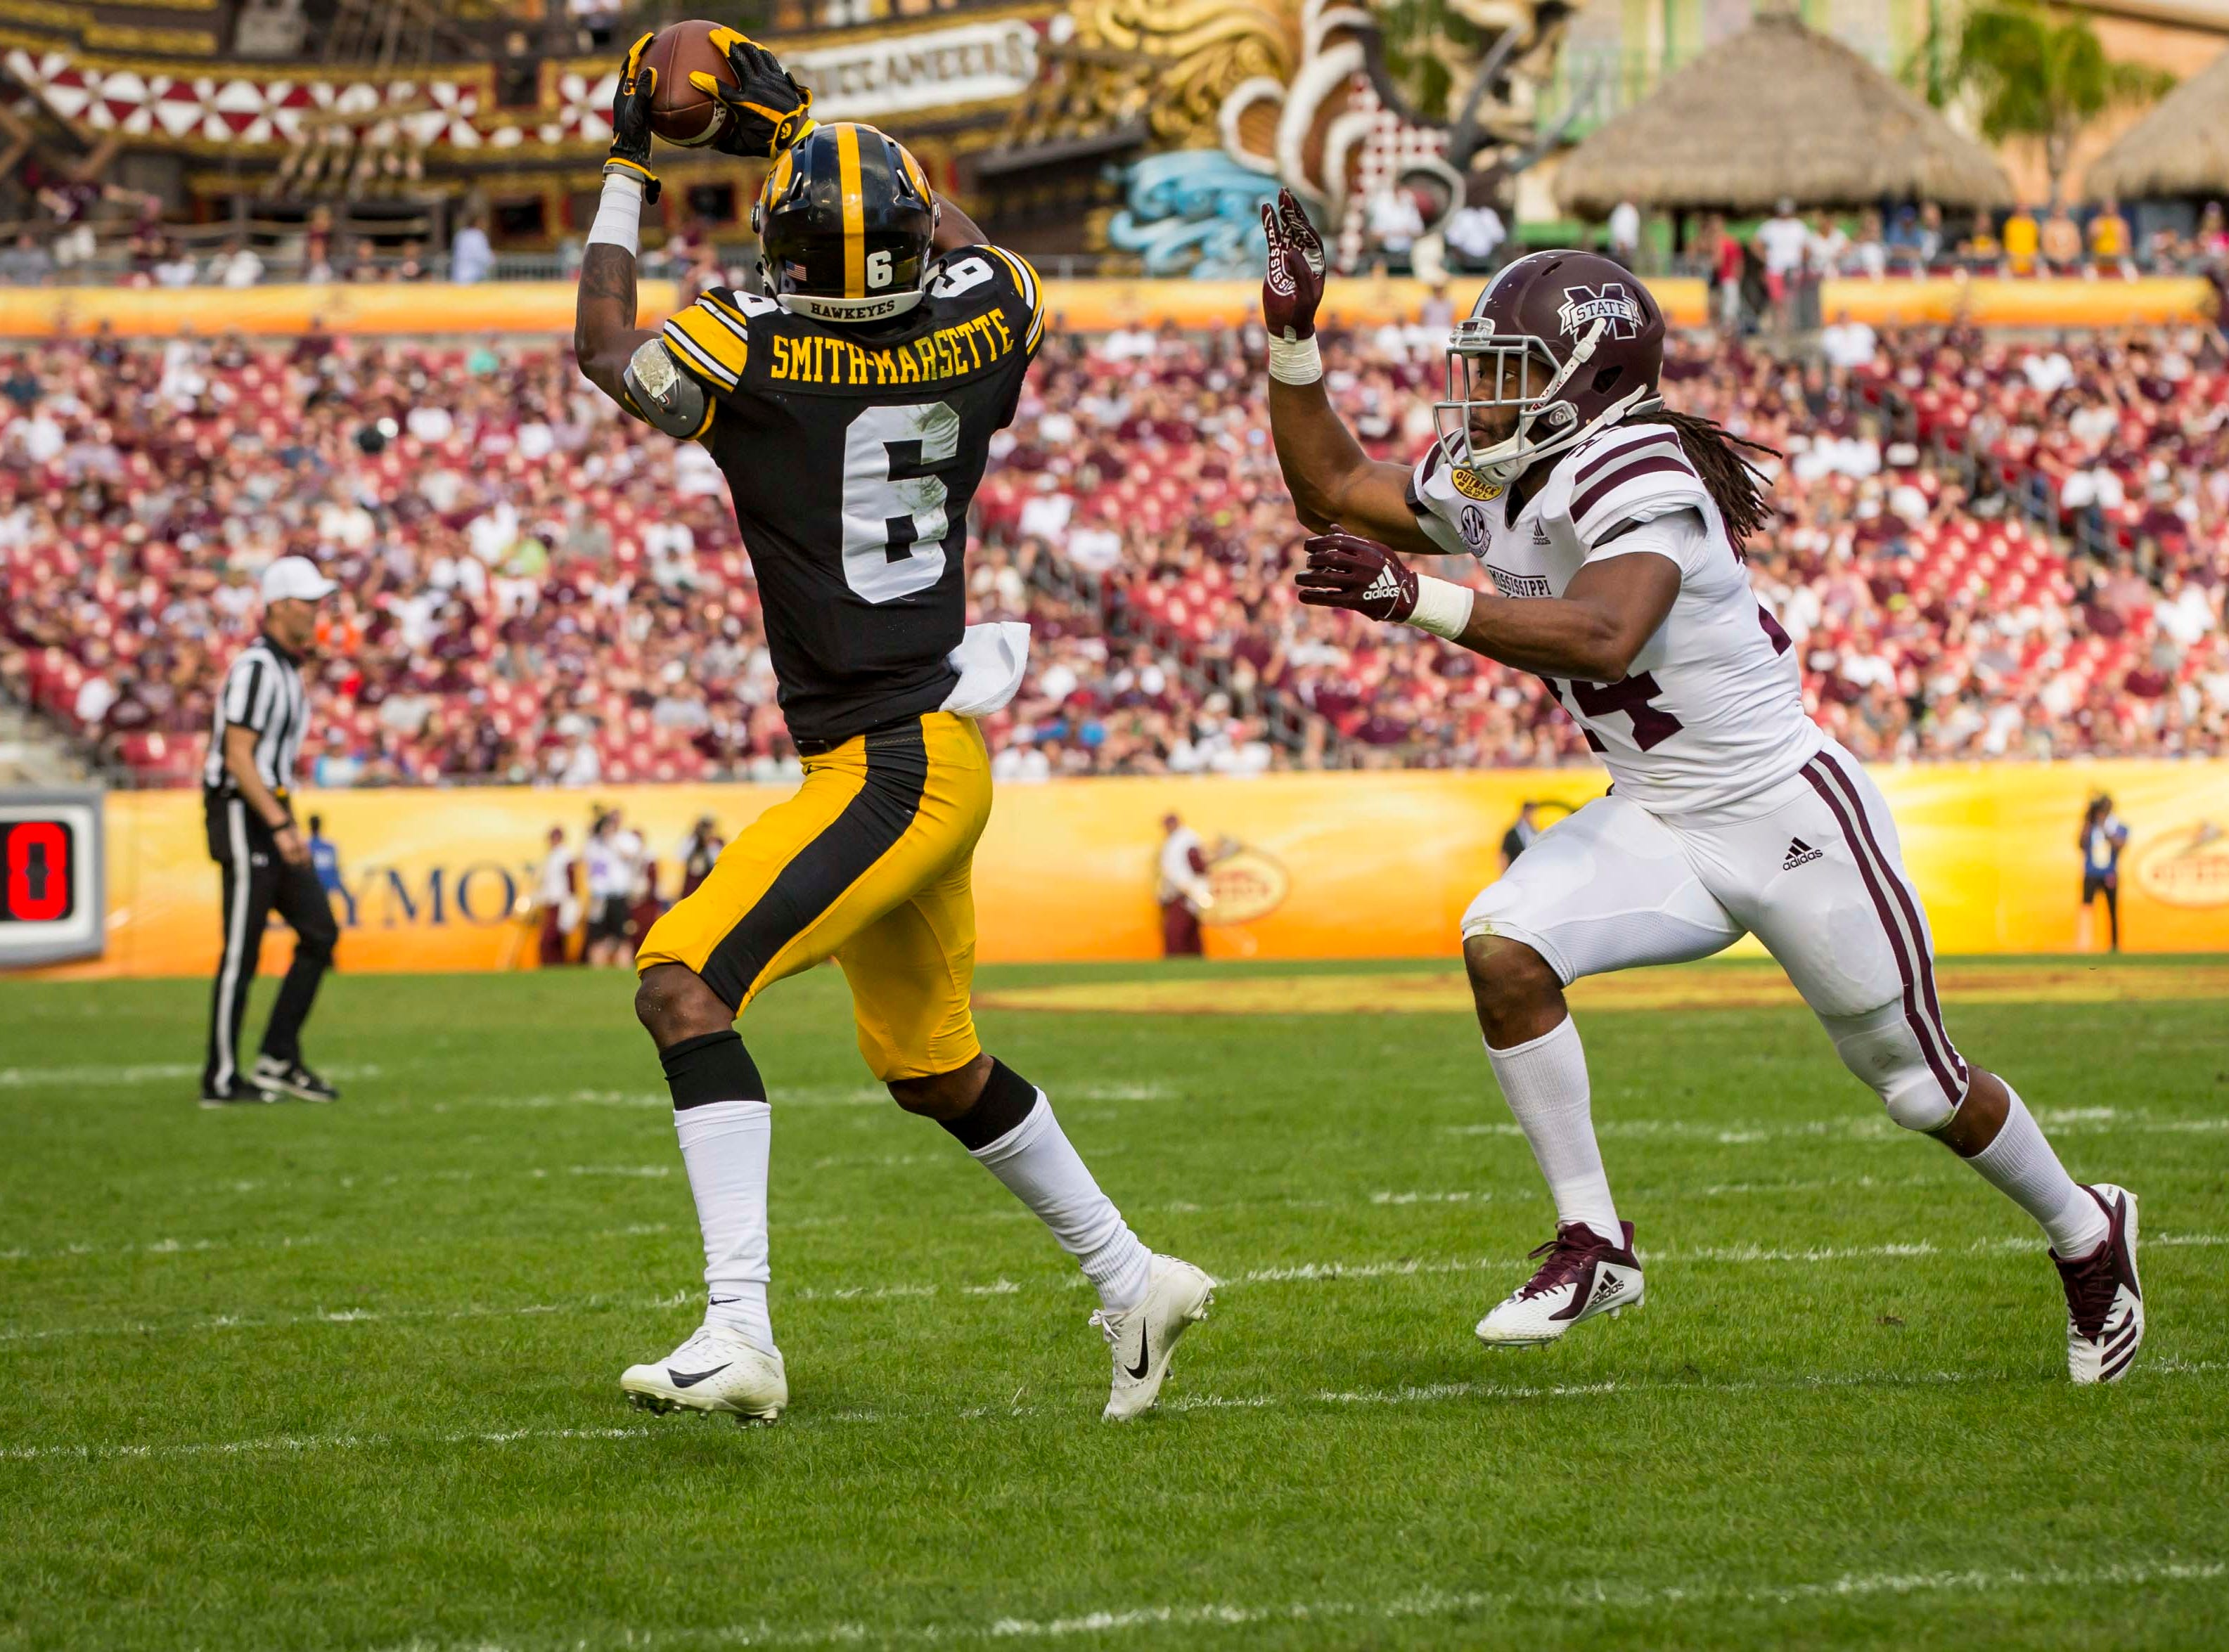 Iowa's wide receiver Ihmir Smith-Marsette catches a touchdown pass in front of Mississippi State's Chris Rayford in the first half at the  Outback Bowl Tues., Jan. 1, 2019, at Raymond James Stadium in Tampa, Florida. Iowa takes a 17-6 lead over Miss. St. into halftime.